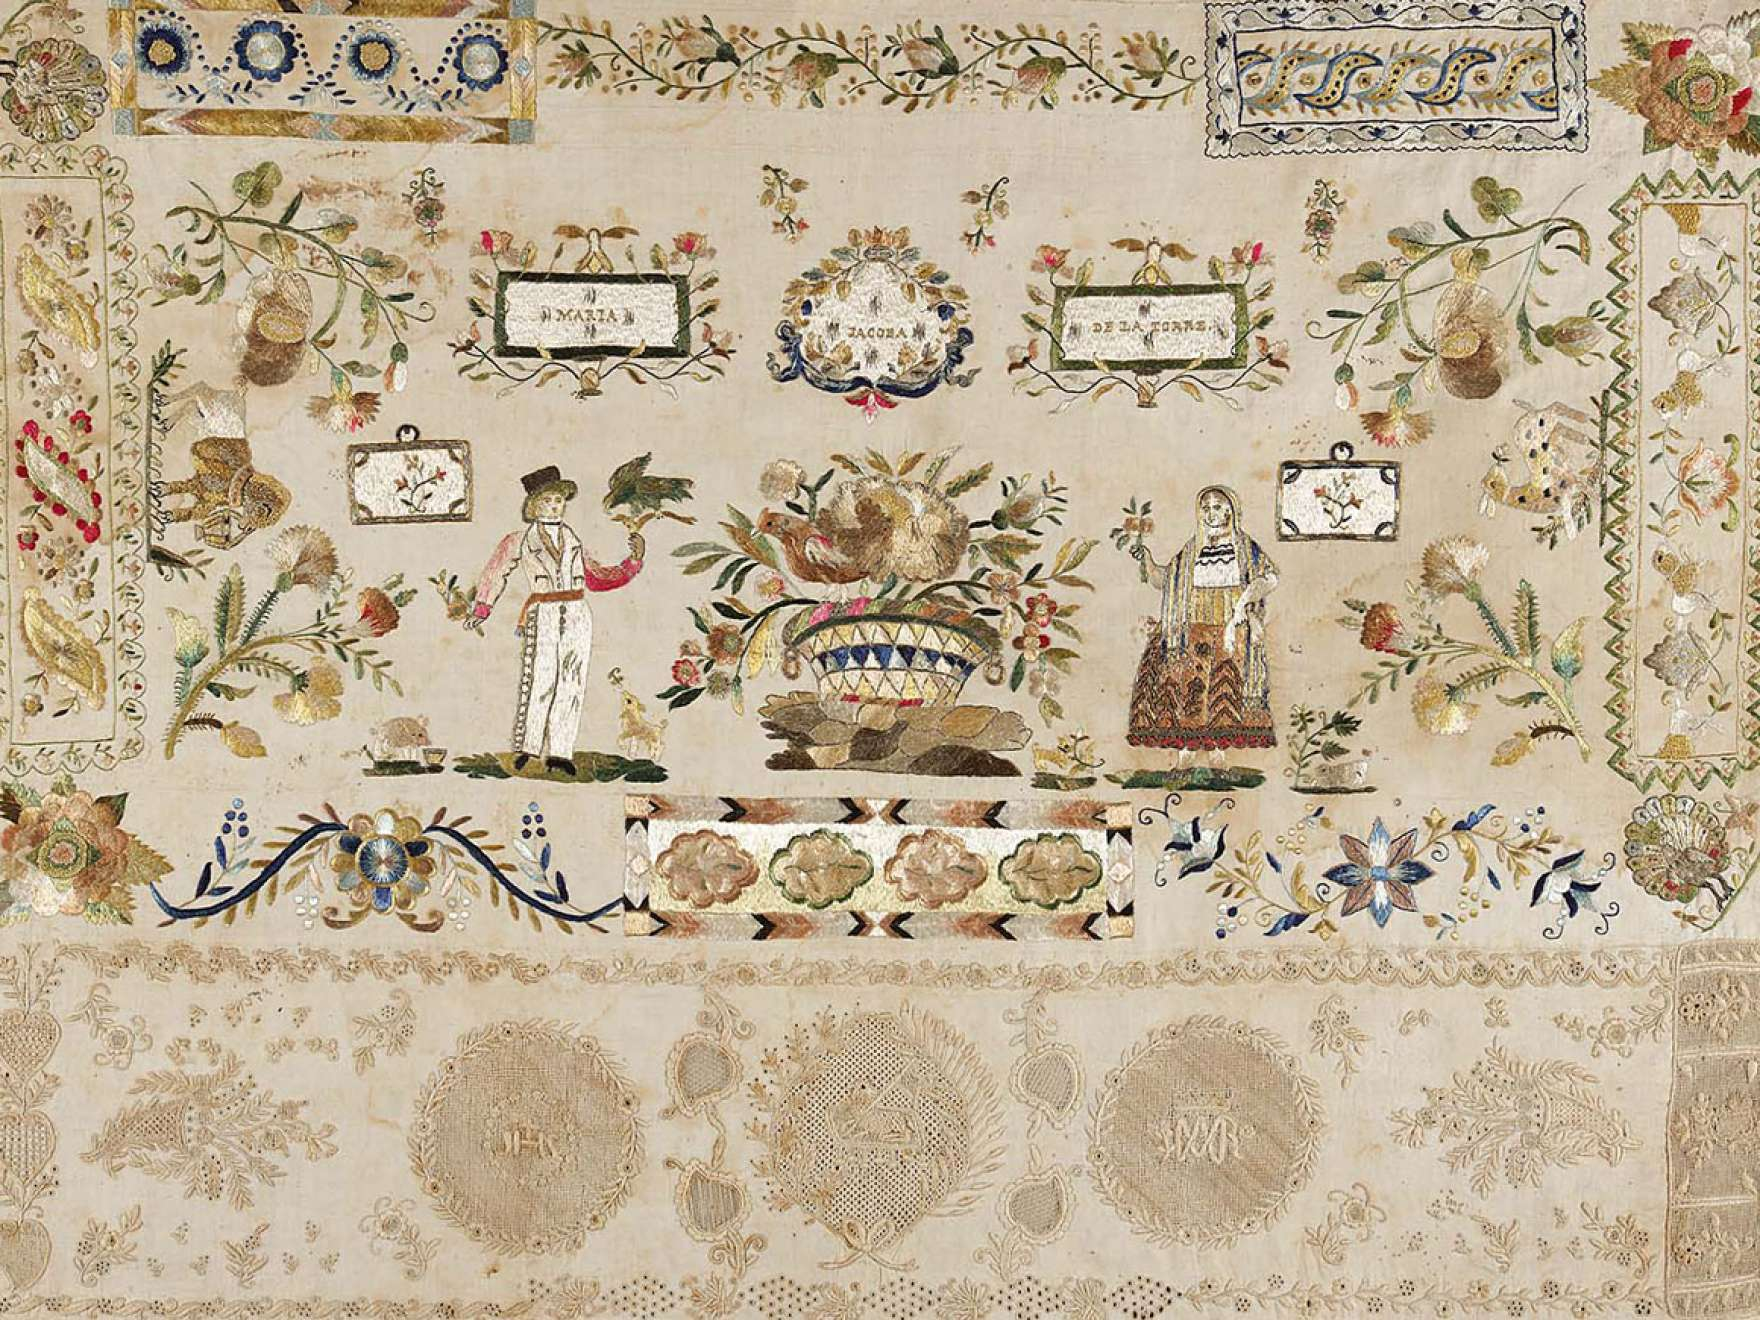 Maria Jacoba de la Torre's embroidered linen, Sampler, from the early 19th century